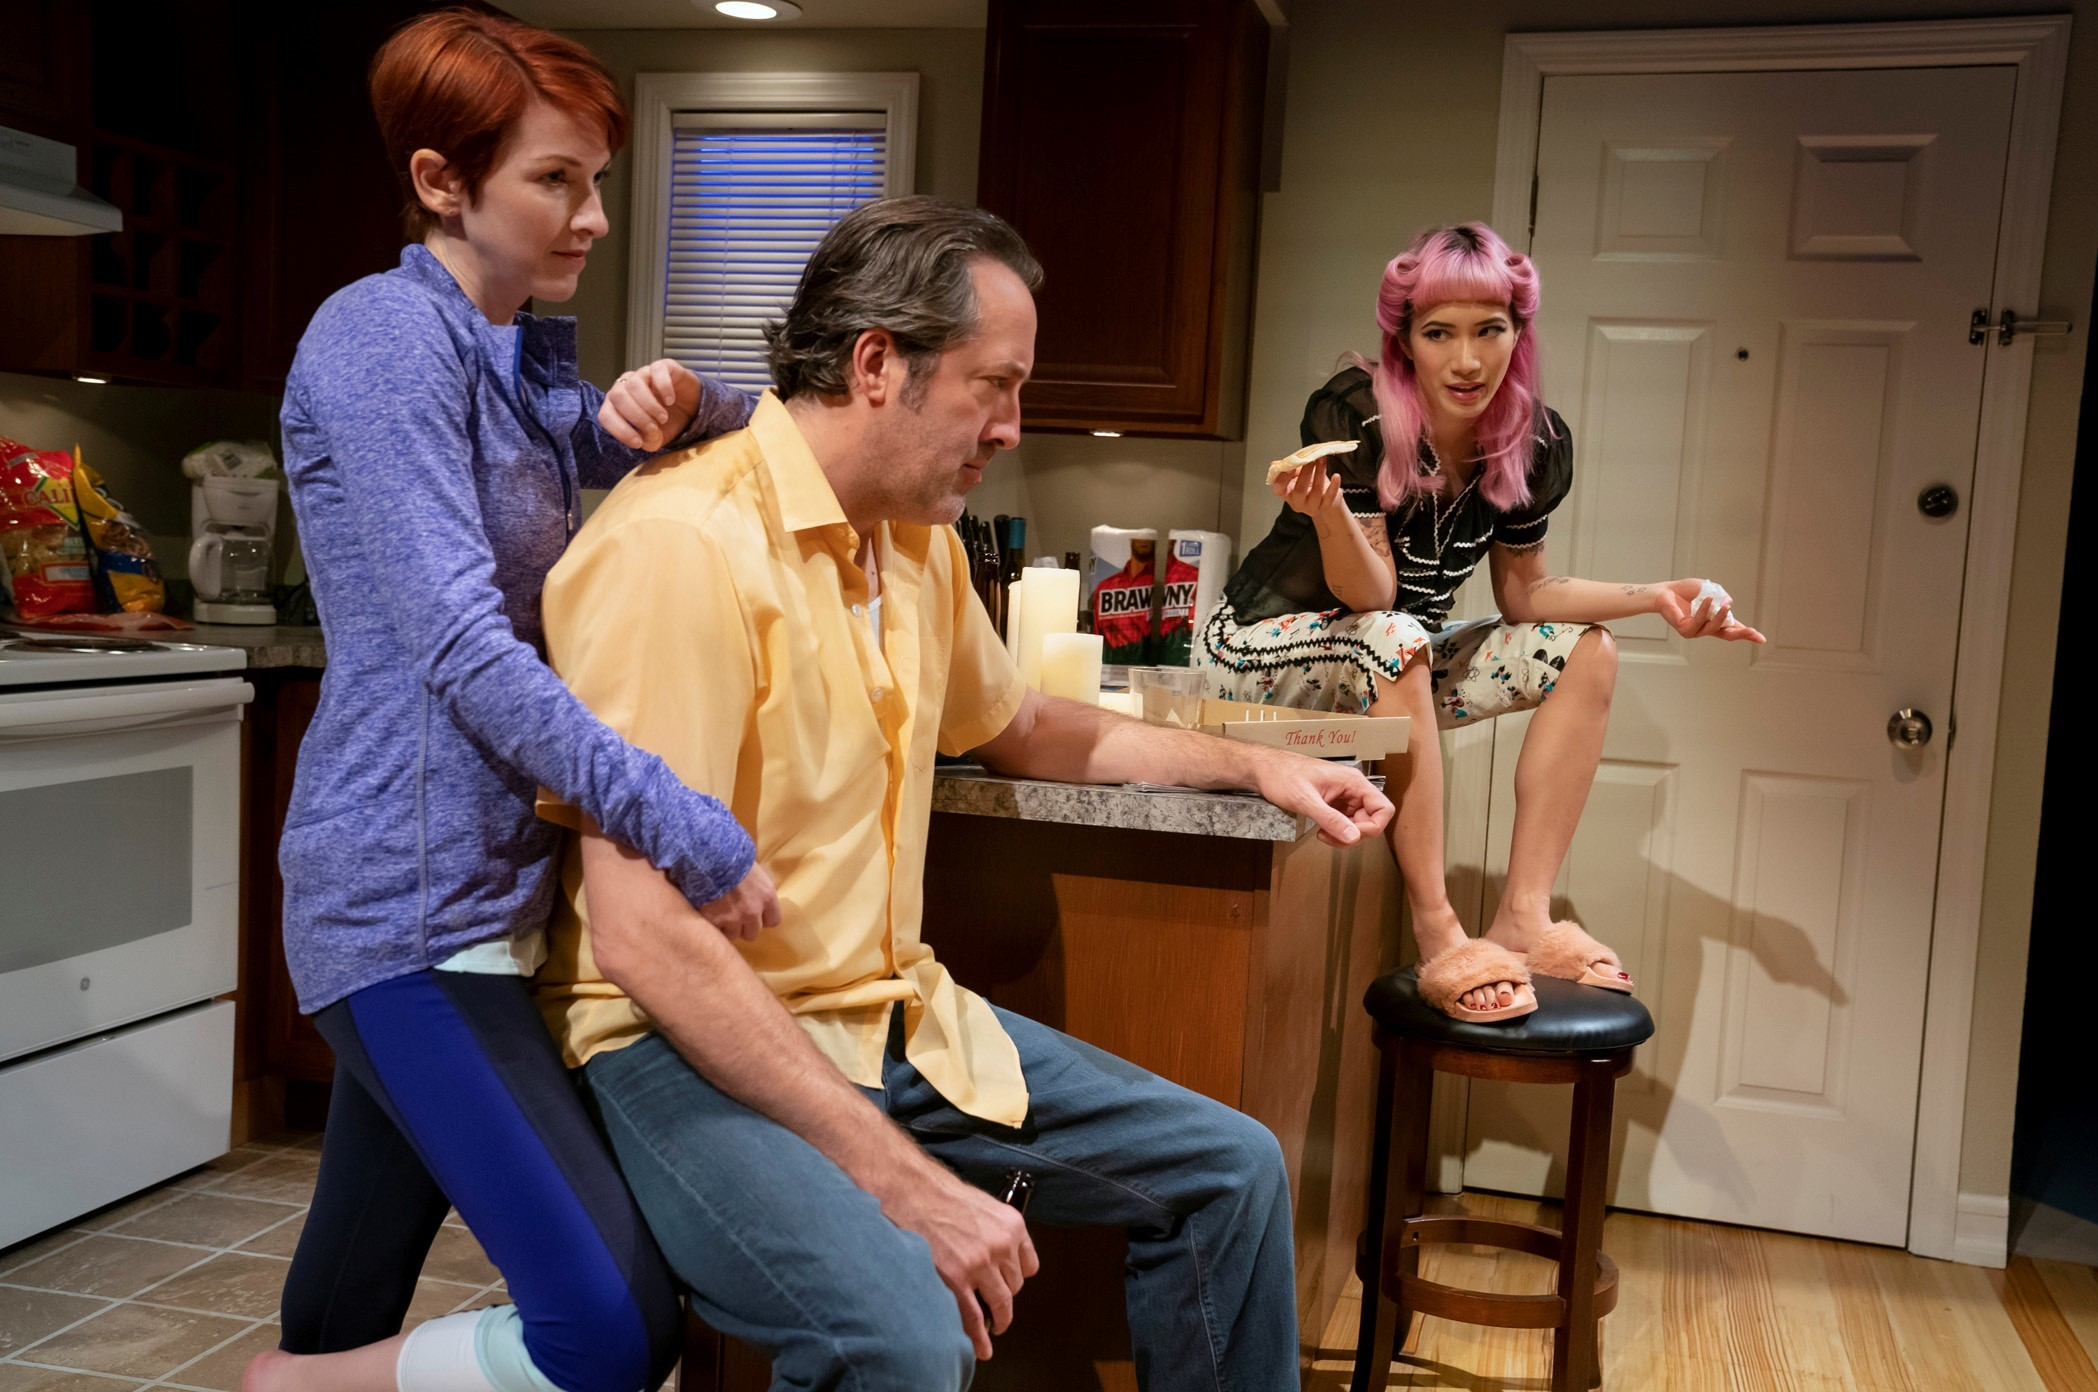 PLAY OF THE DAY! Today's Play: LINDA VISTA by Tracy Letts